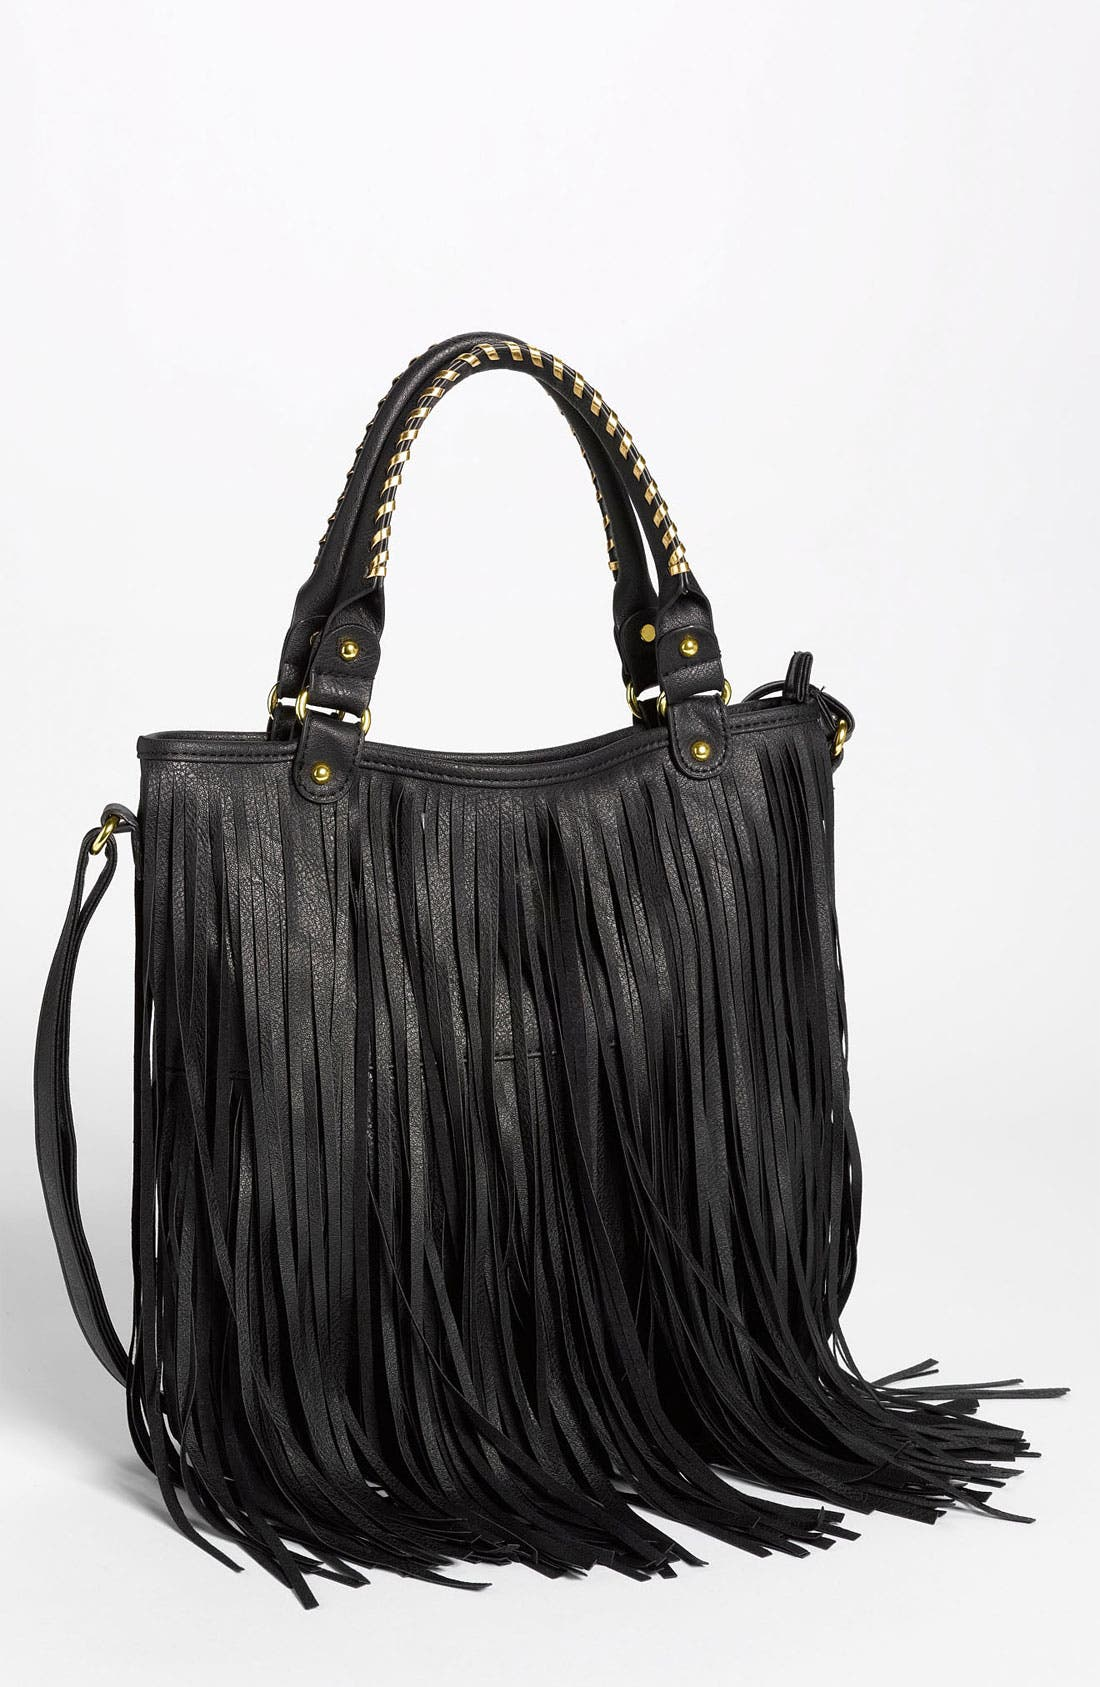 Alternate Image 1 Selected - BP. Faux Leather Fringe Hobo Bag